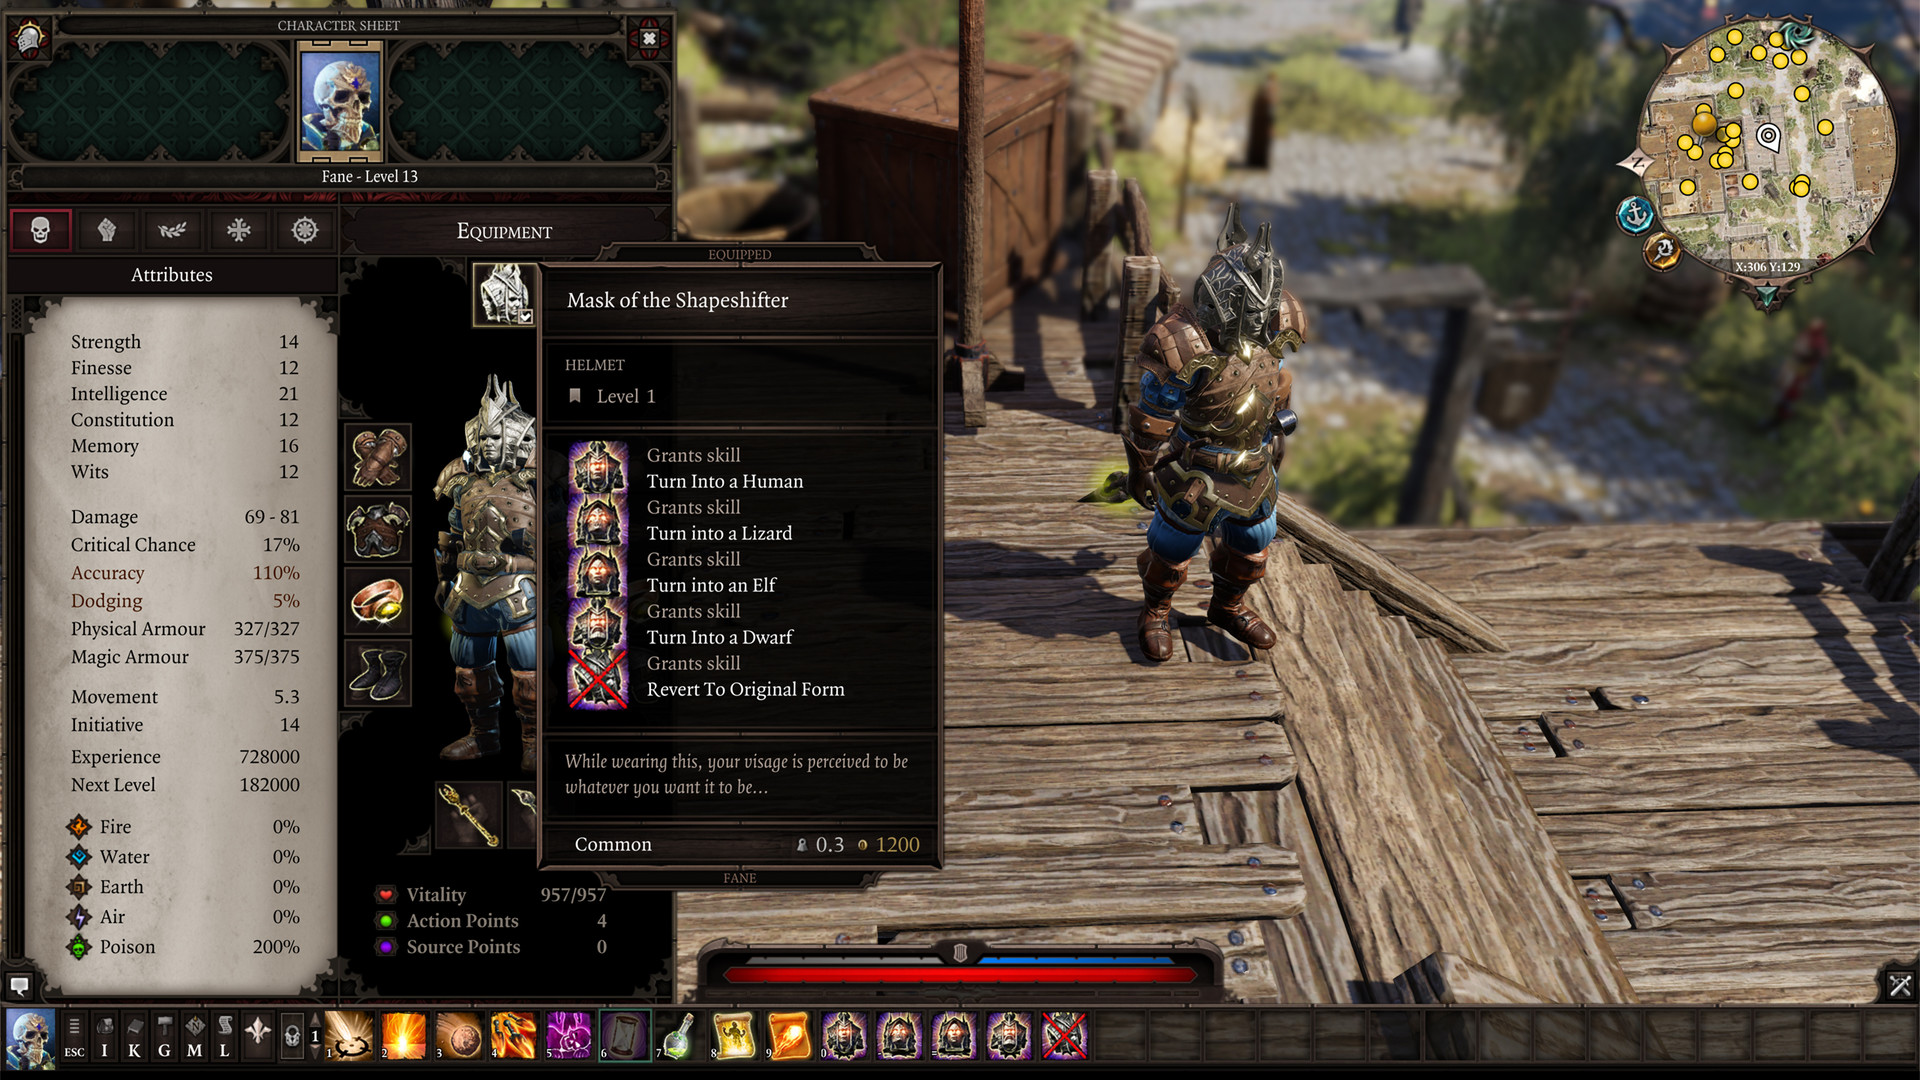 Divinity original sin 2 crafting guide gameratedgames divinity original sin 2 crafting forumfinder Image collections